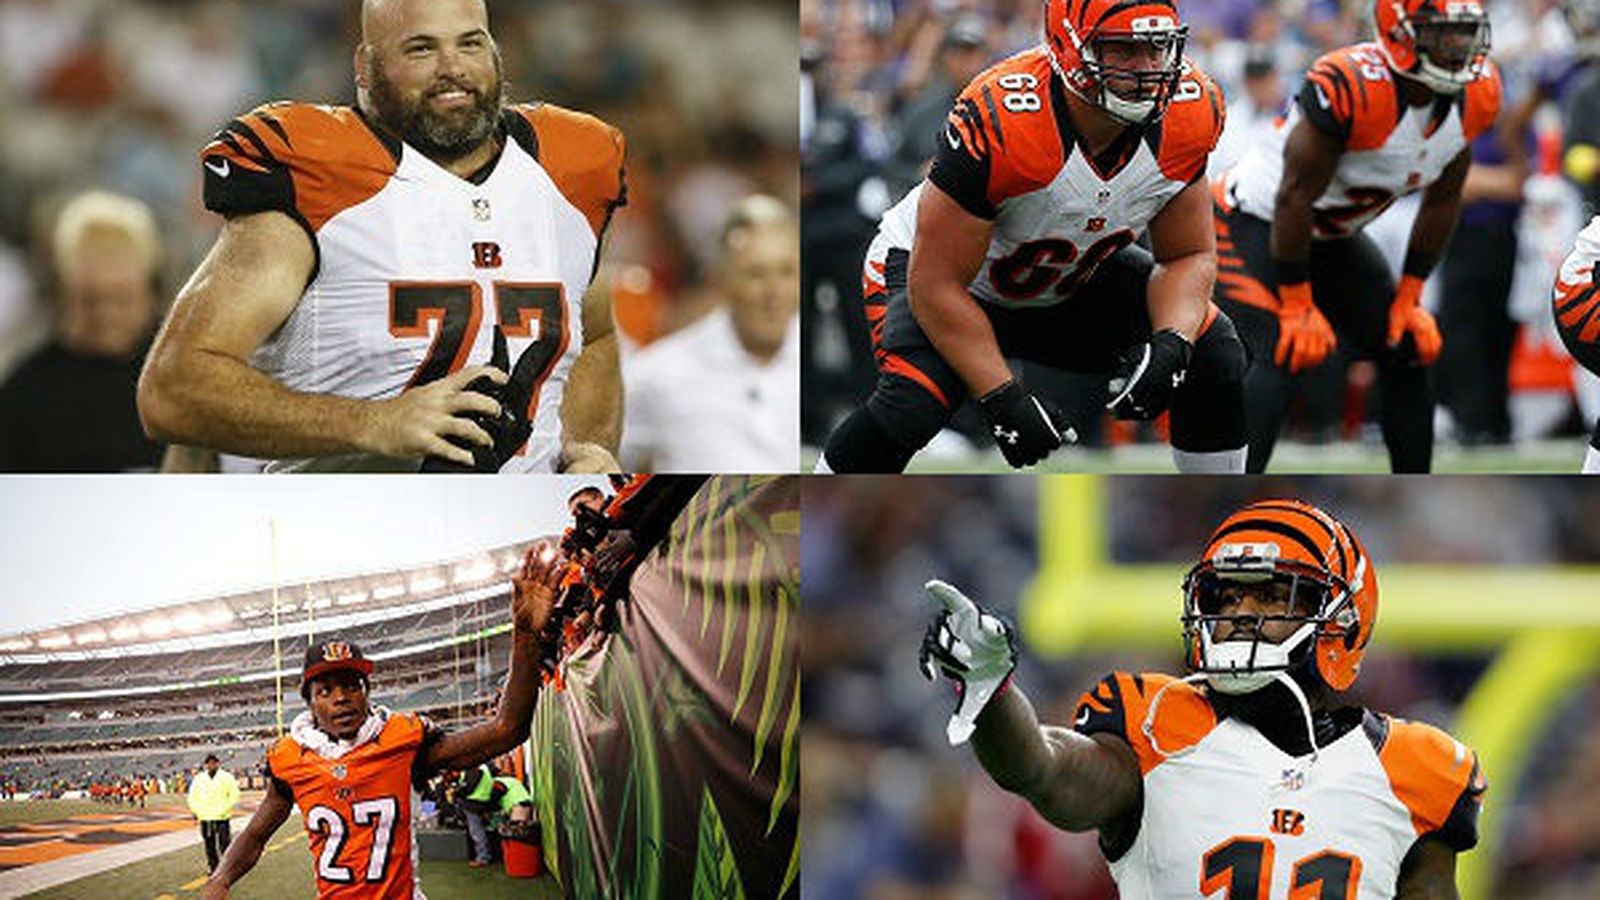 Nf Nfl Free Agents 2016 Rankings - Ranking the bengals 2017 free agents in order of priority to re sign cincy jungle